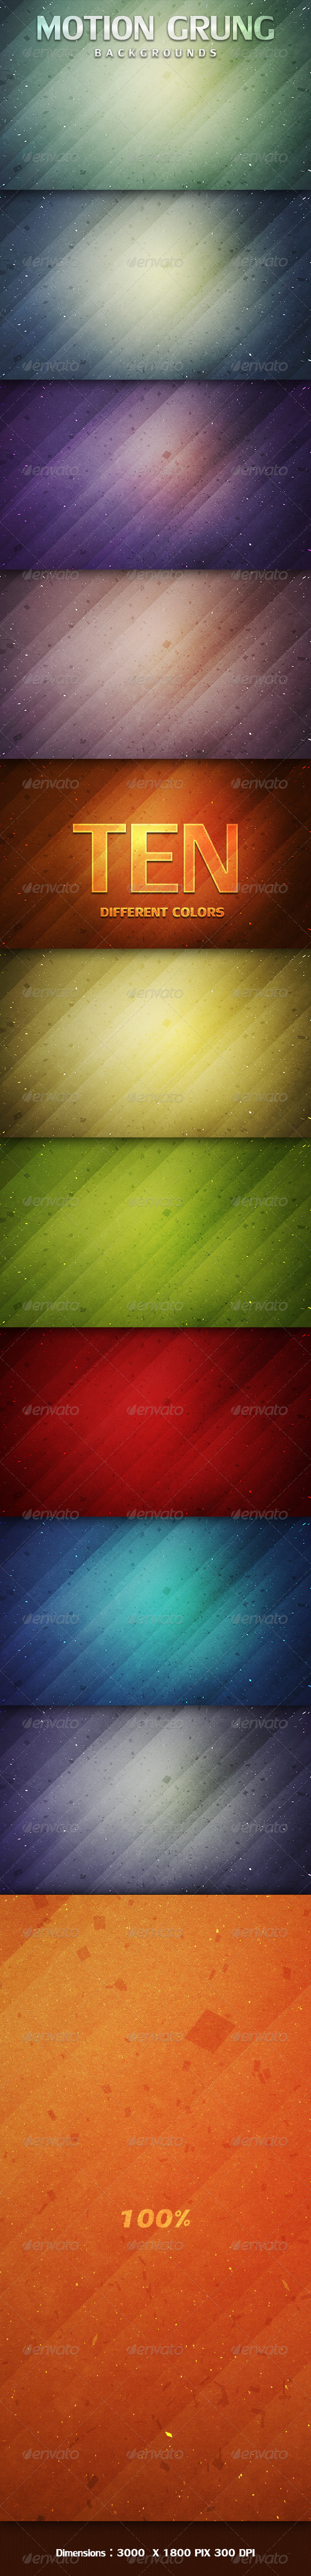 GraphicRiver Motion Grunge Backgrounds 3371153